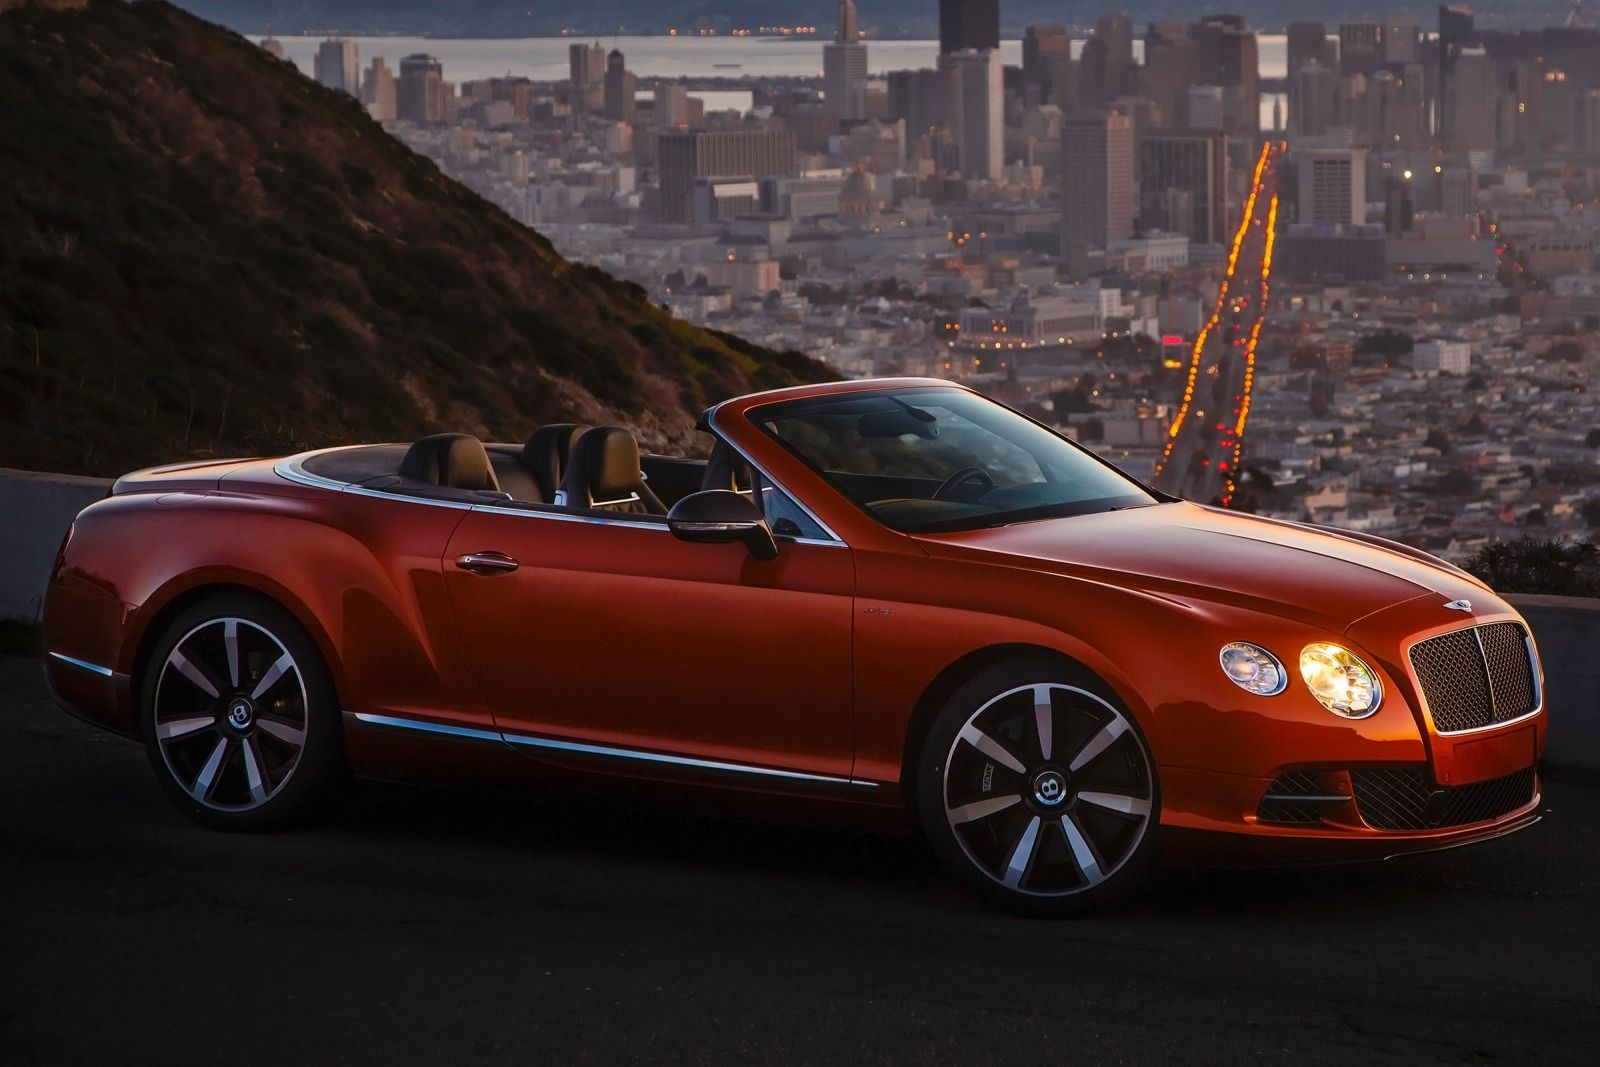 2014 Bentley Continental GT Speed Convertible photo - 1